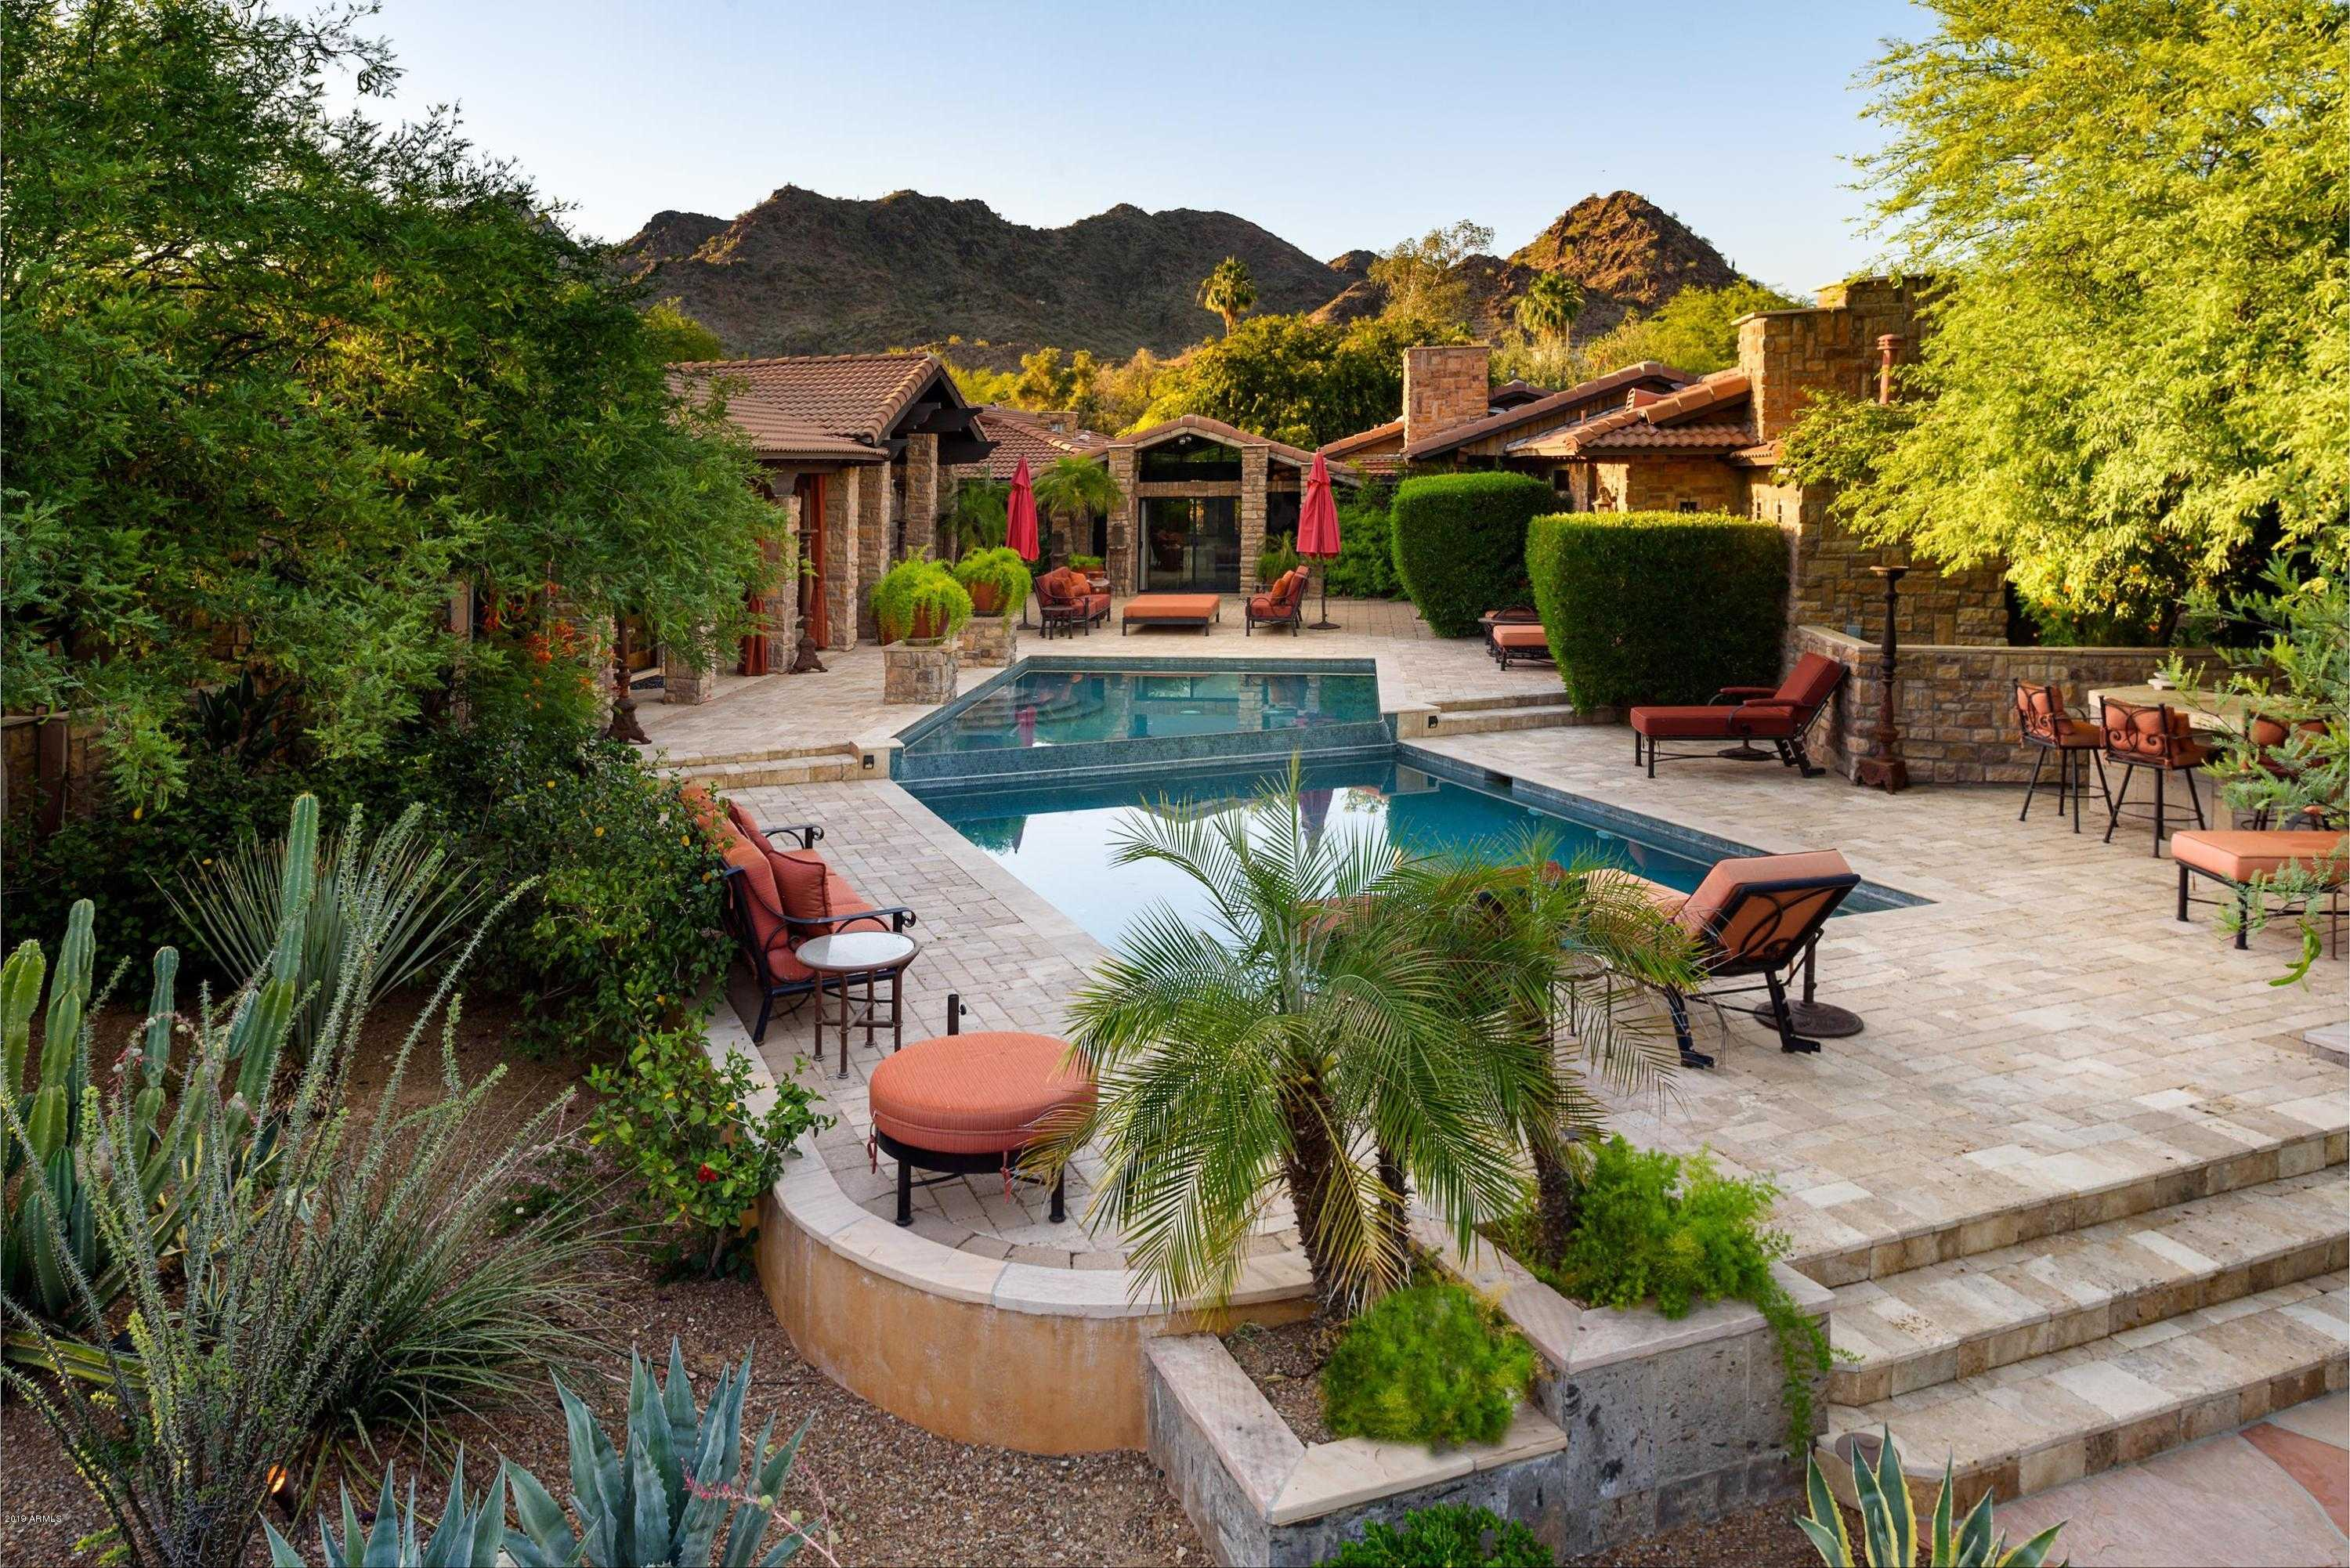 $2,300,000 - 5Br/6Ba - Home for Sale in Mirada Los Arcos Phase 2, Paradise Valley